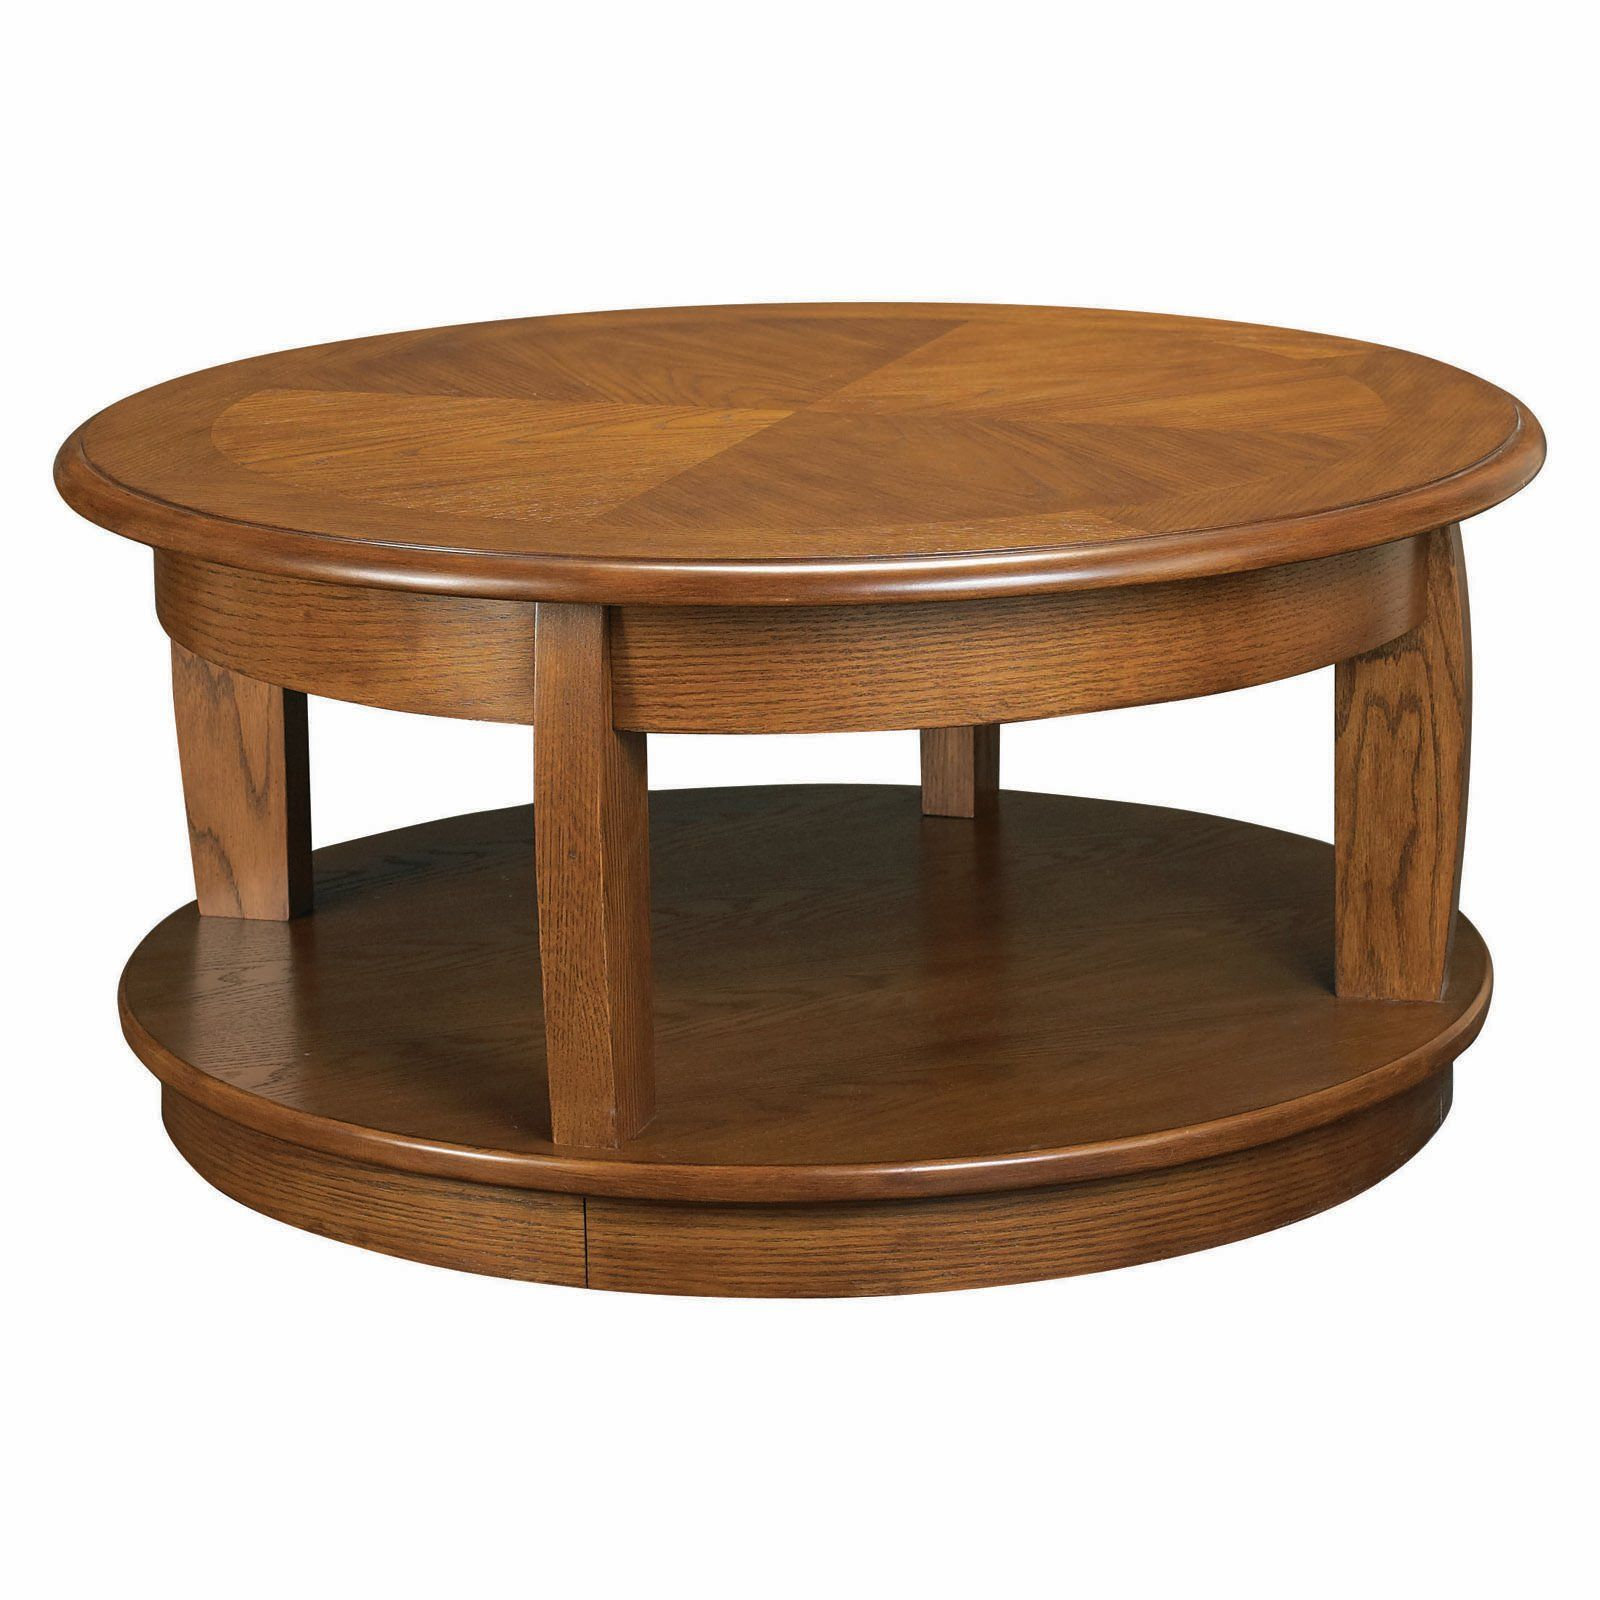 Hammary Ascend Round Lift Top Coffee Table Www Hayneedle Com Coffee Table Inspiration Coffee Table With Stools Coffee Tables For Sale [ 1600 x 1600 Pixel ]